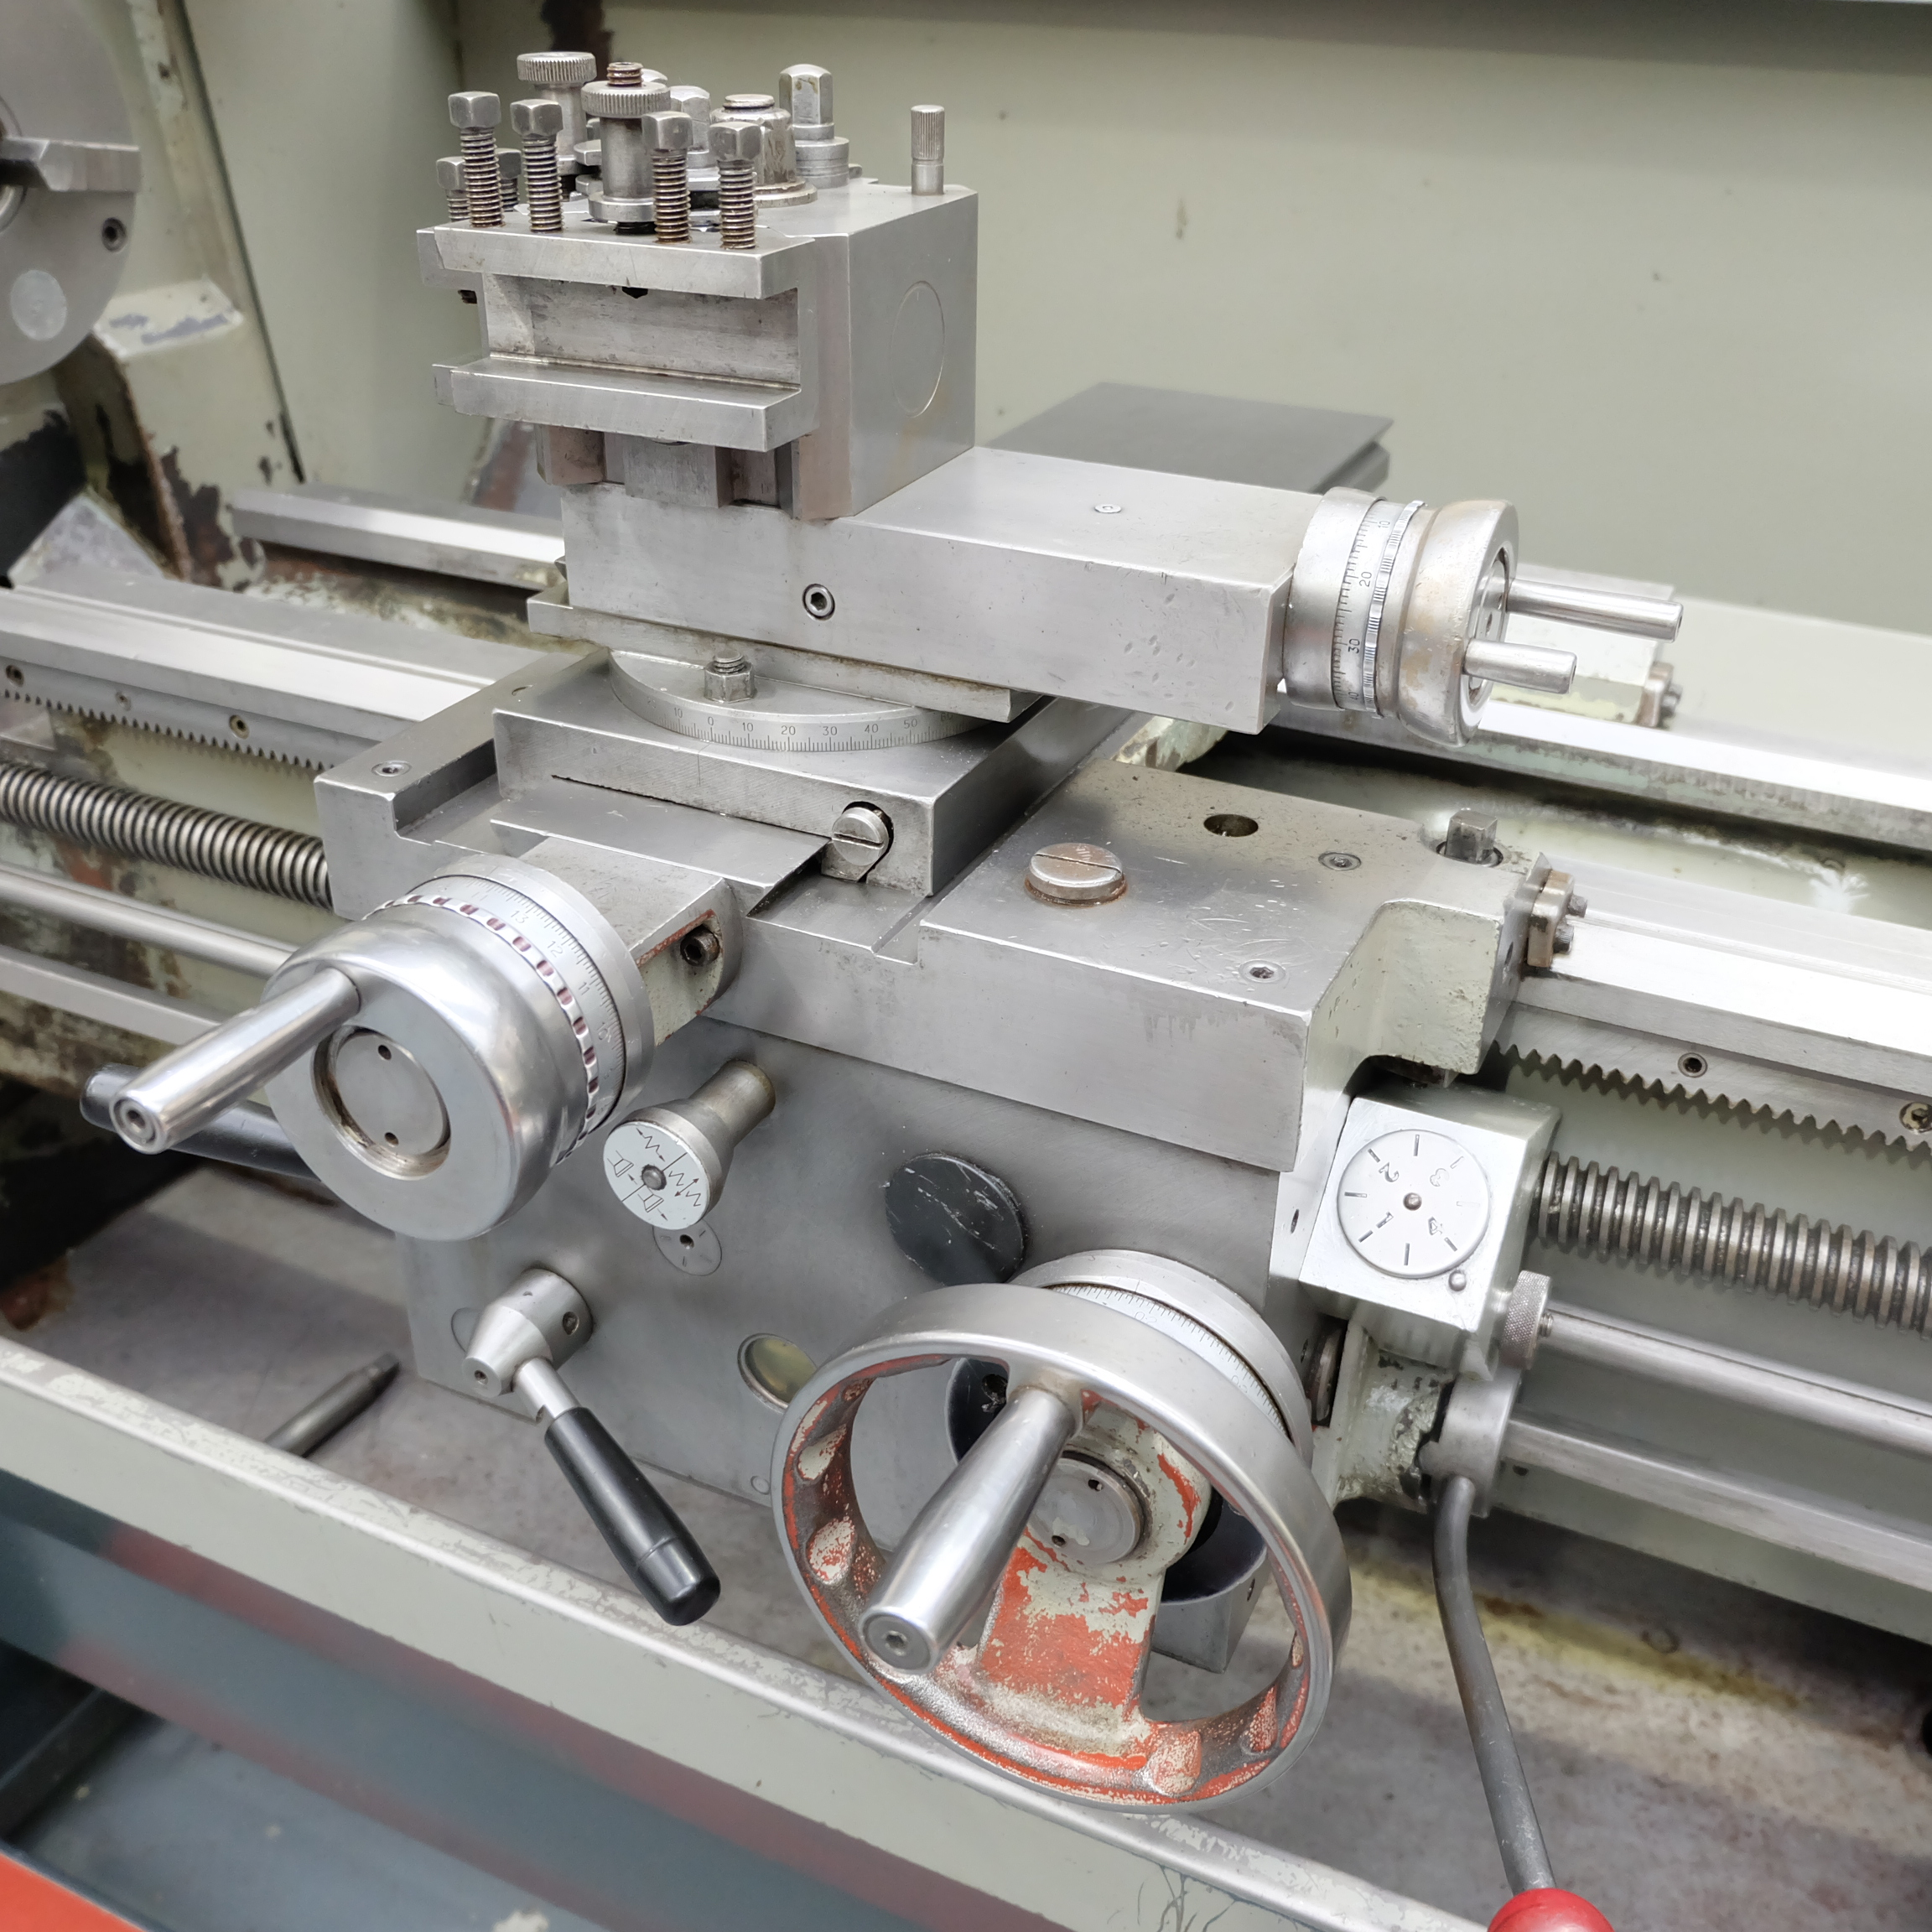 Colchester Student Gap Bed Centre Lathe. - Image 6 of 7